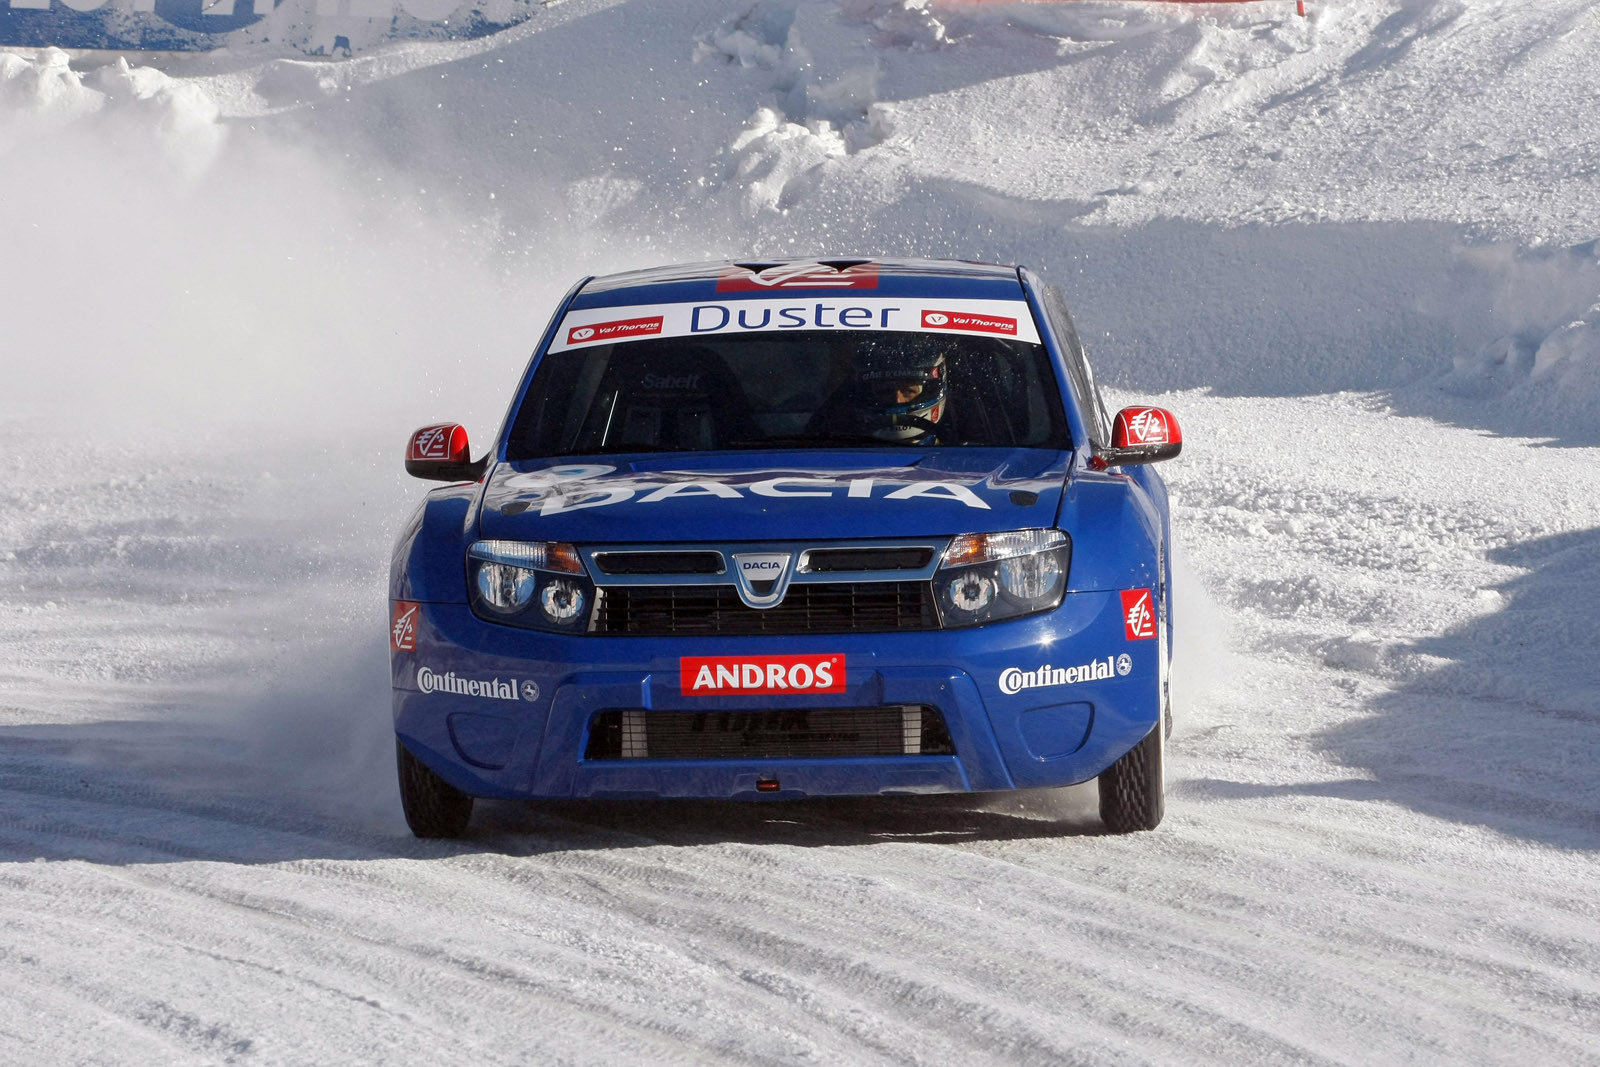 2010 dacia duster ice racer picture 384001 car review top speed. Black Bedroom Furniture Sets. Home Design Ideas